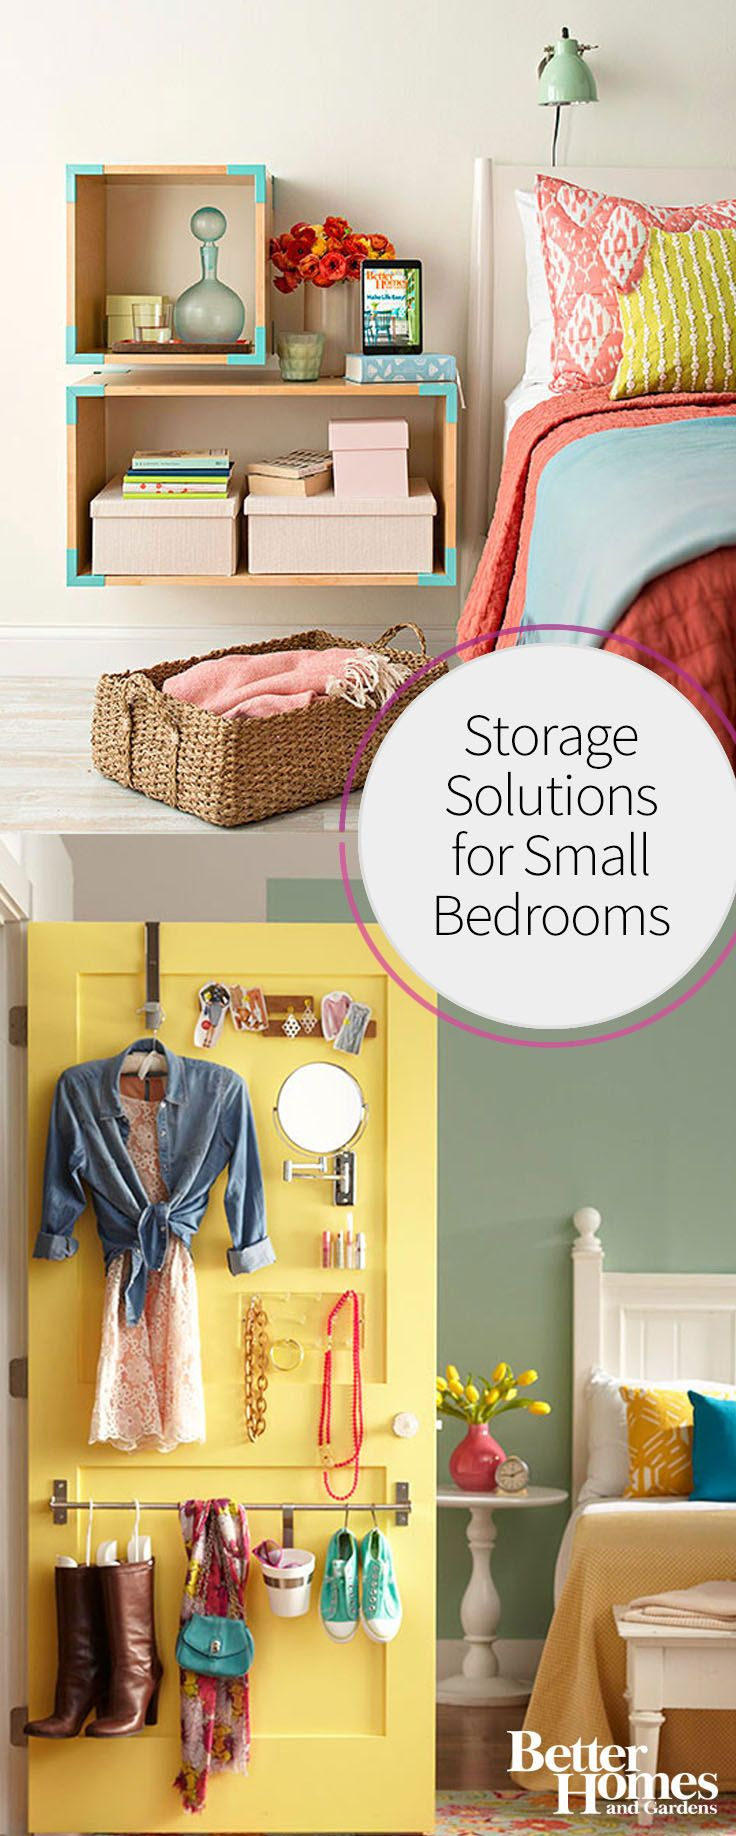 Very small bedroom solutions - If You Have A Small Bedroom Use This Guide To Plan Smart Storage Solutions That